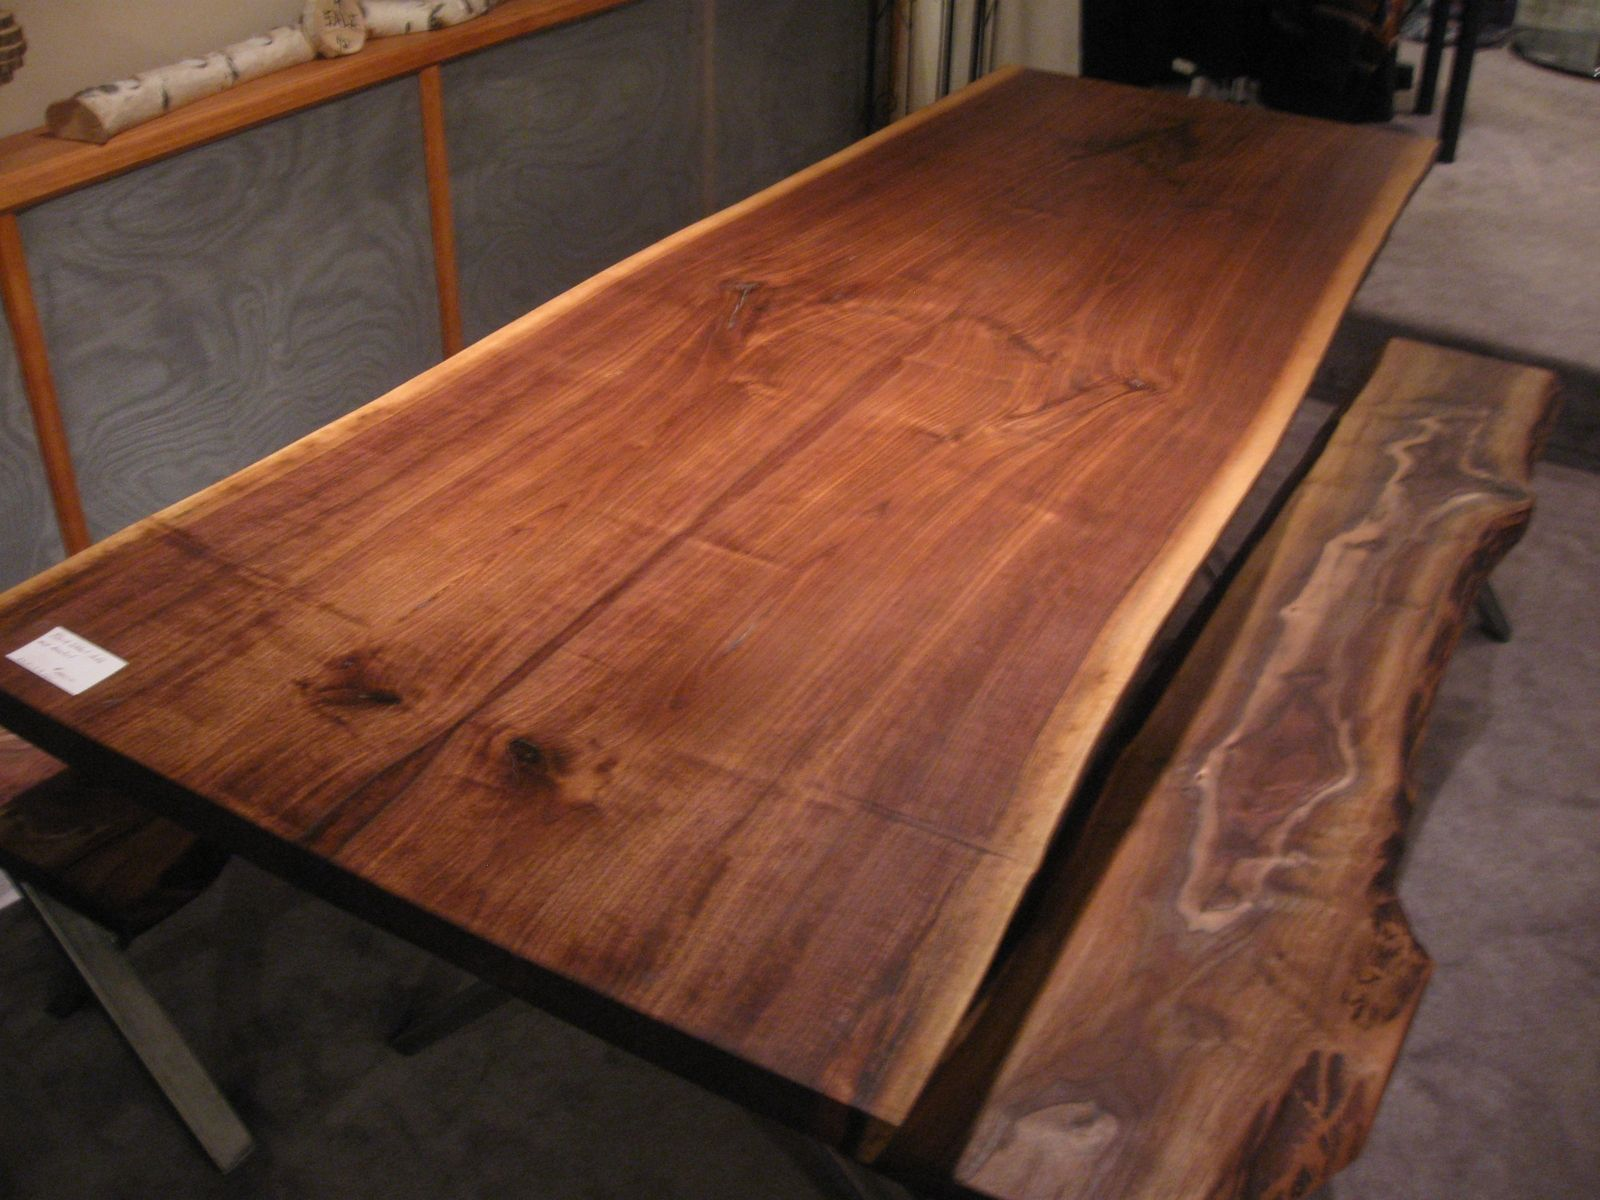 Handmade Walnut Live Edge Slab X Base Table By Woodrich